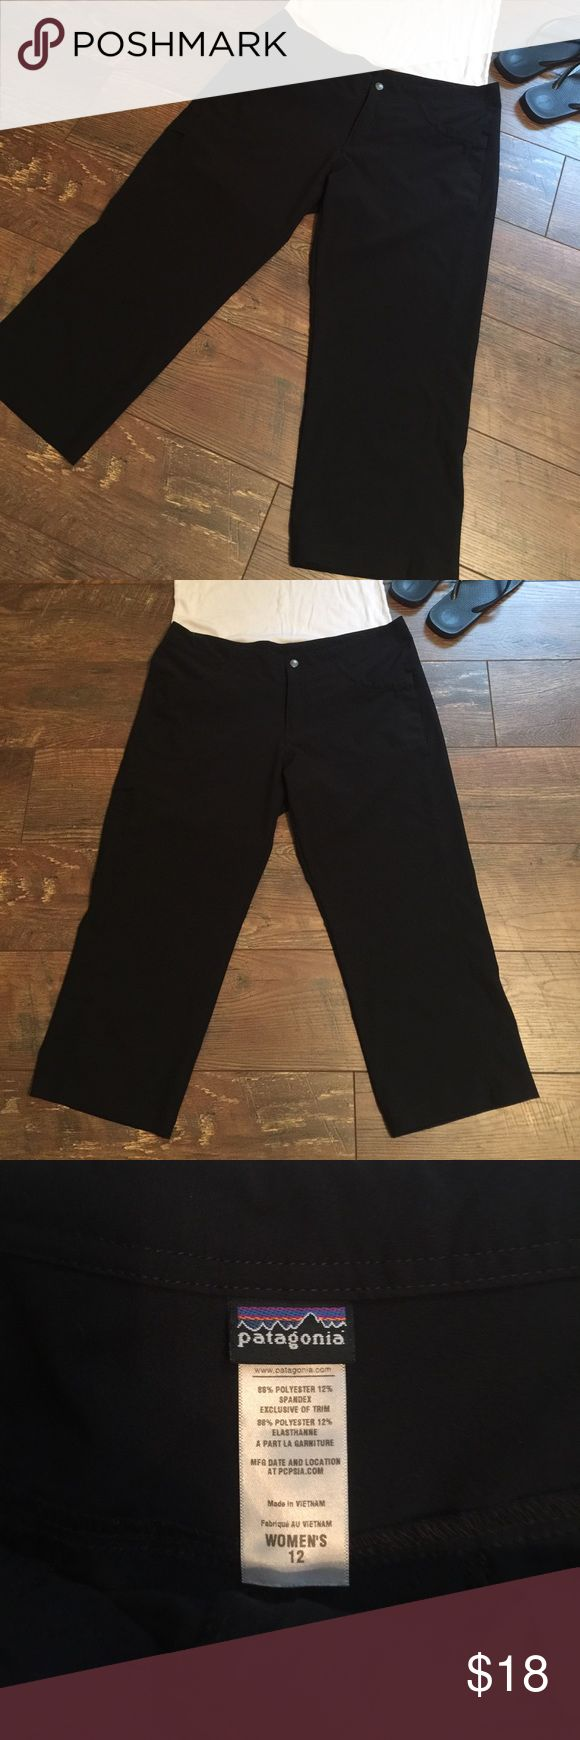 Patagonia Cropped Pants Patagonia cropped pants in a size 12. The pants are black in color and have a zipper and button closure in the front. Please let me know if you have any questions. Patagonia Pants Ankle & Cropped